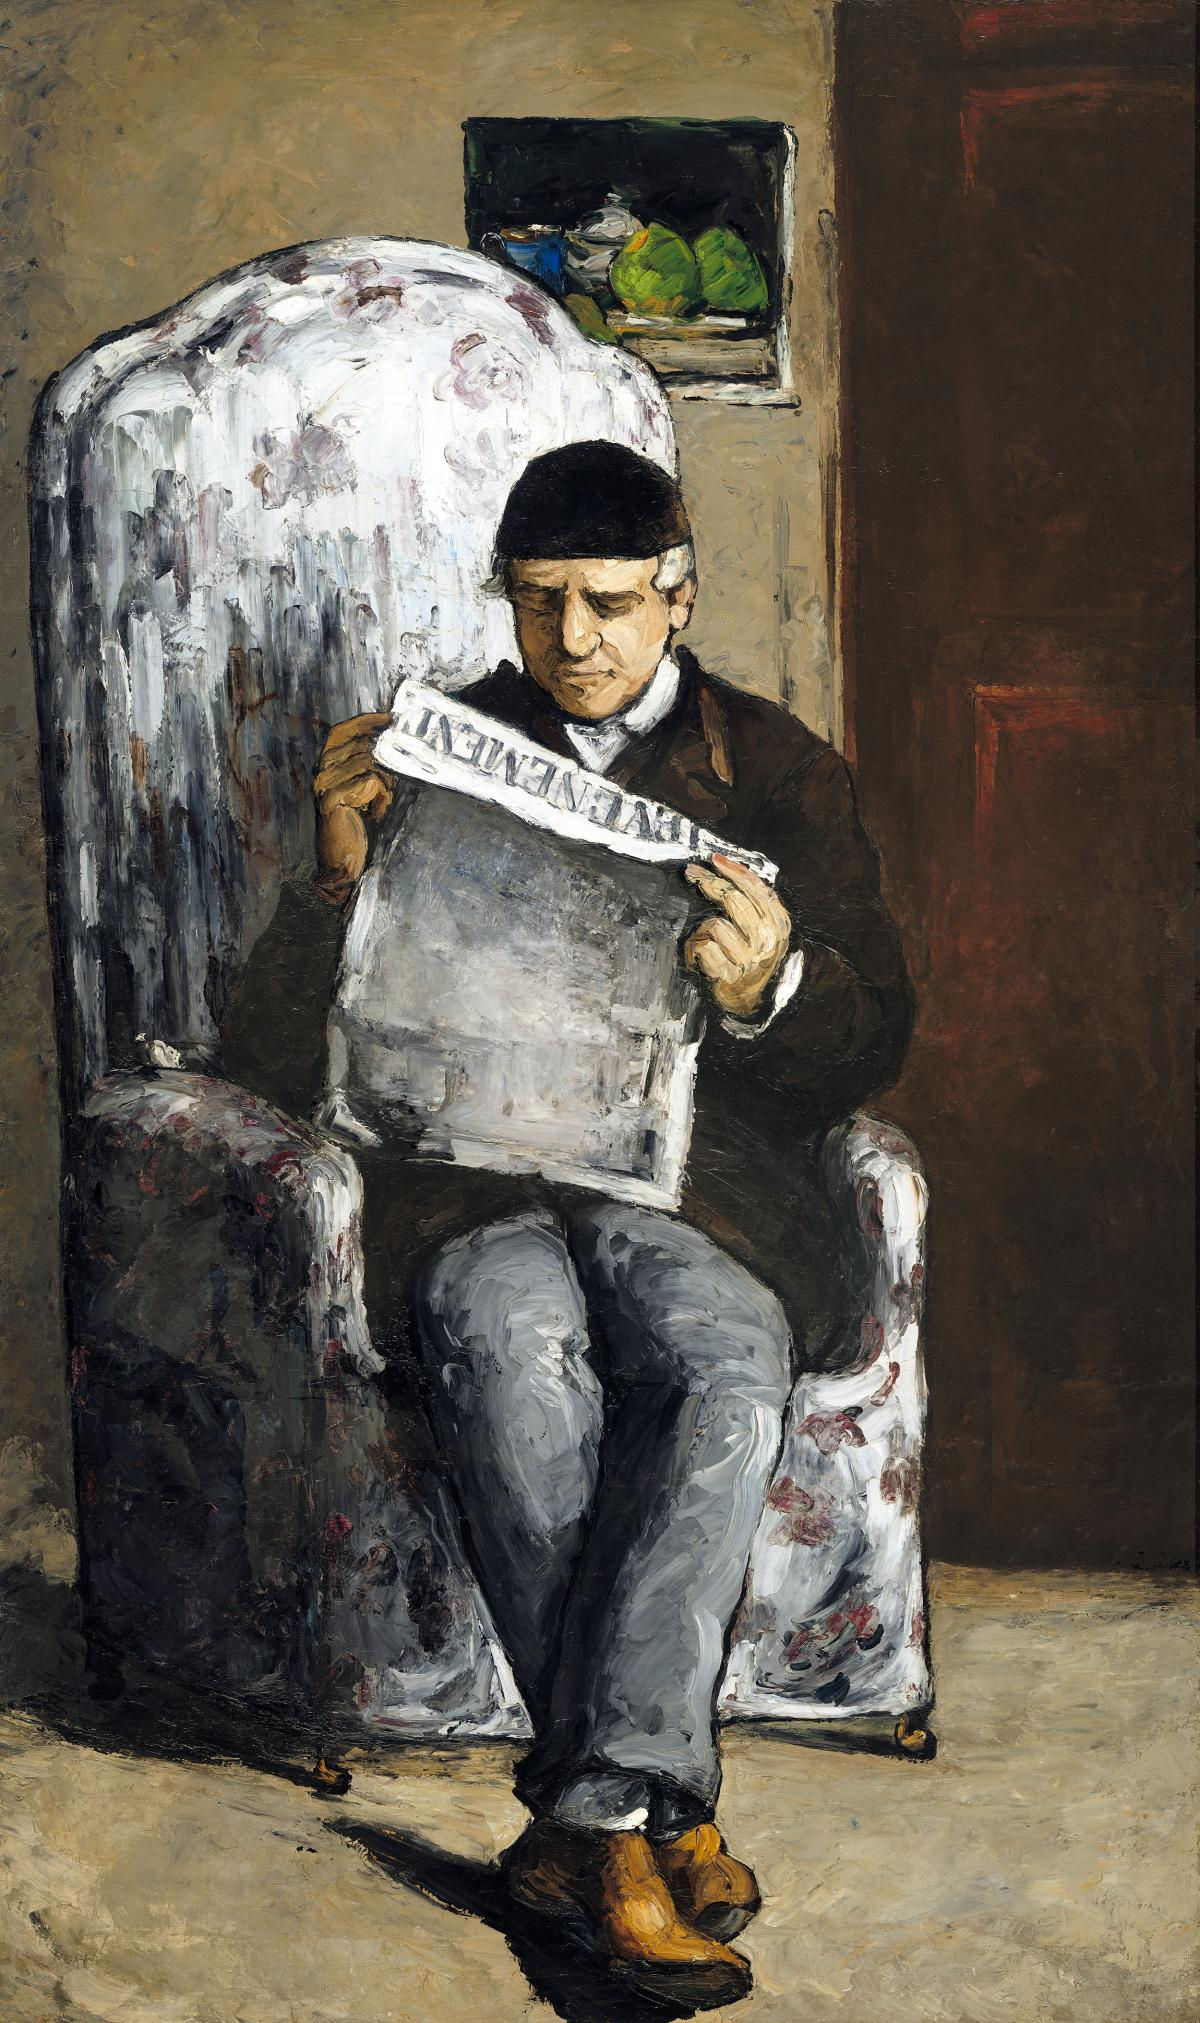 """The Artist's Father, Reading """"L'Événement"""" (1866) by Paul Cézanne. Original from The National Gallery of Art."""